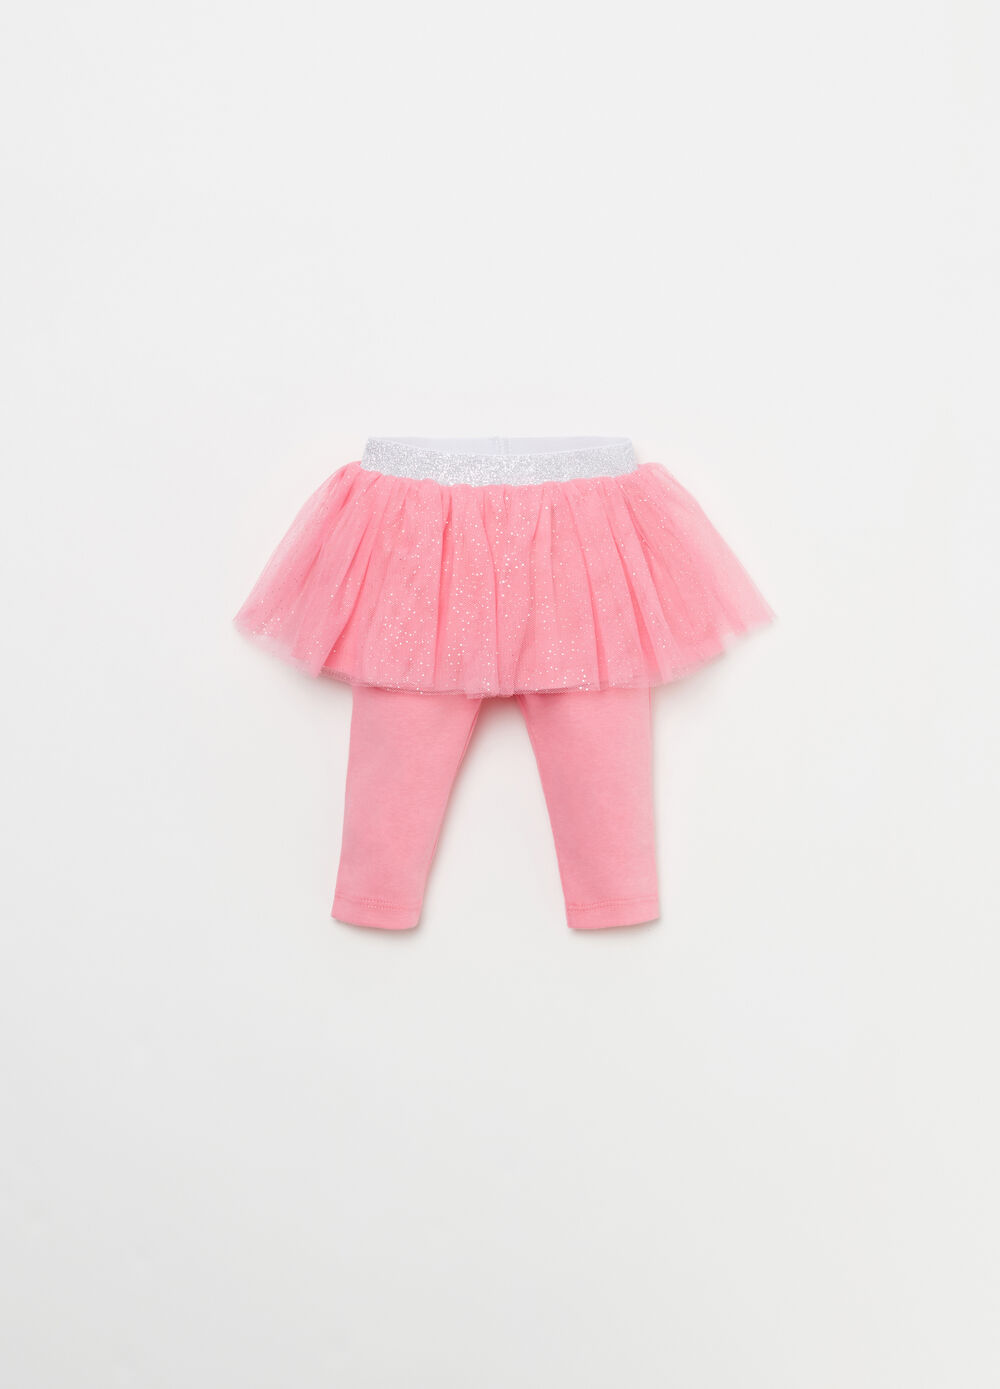 Cotton leggings with glitter tulle skirt